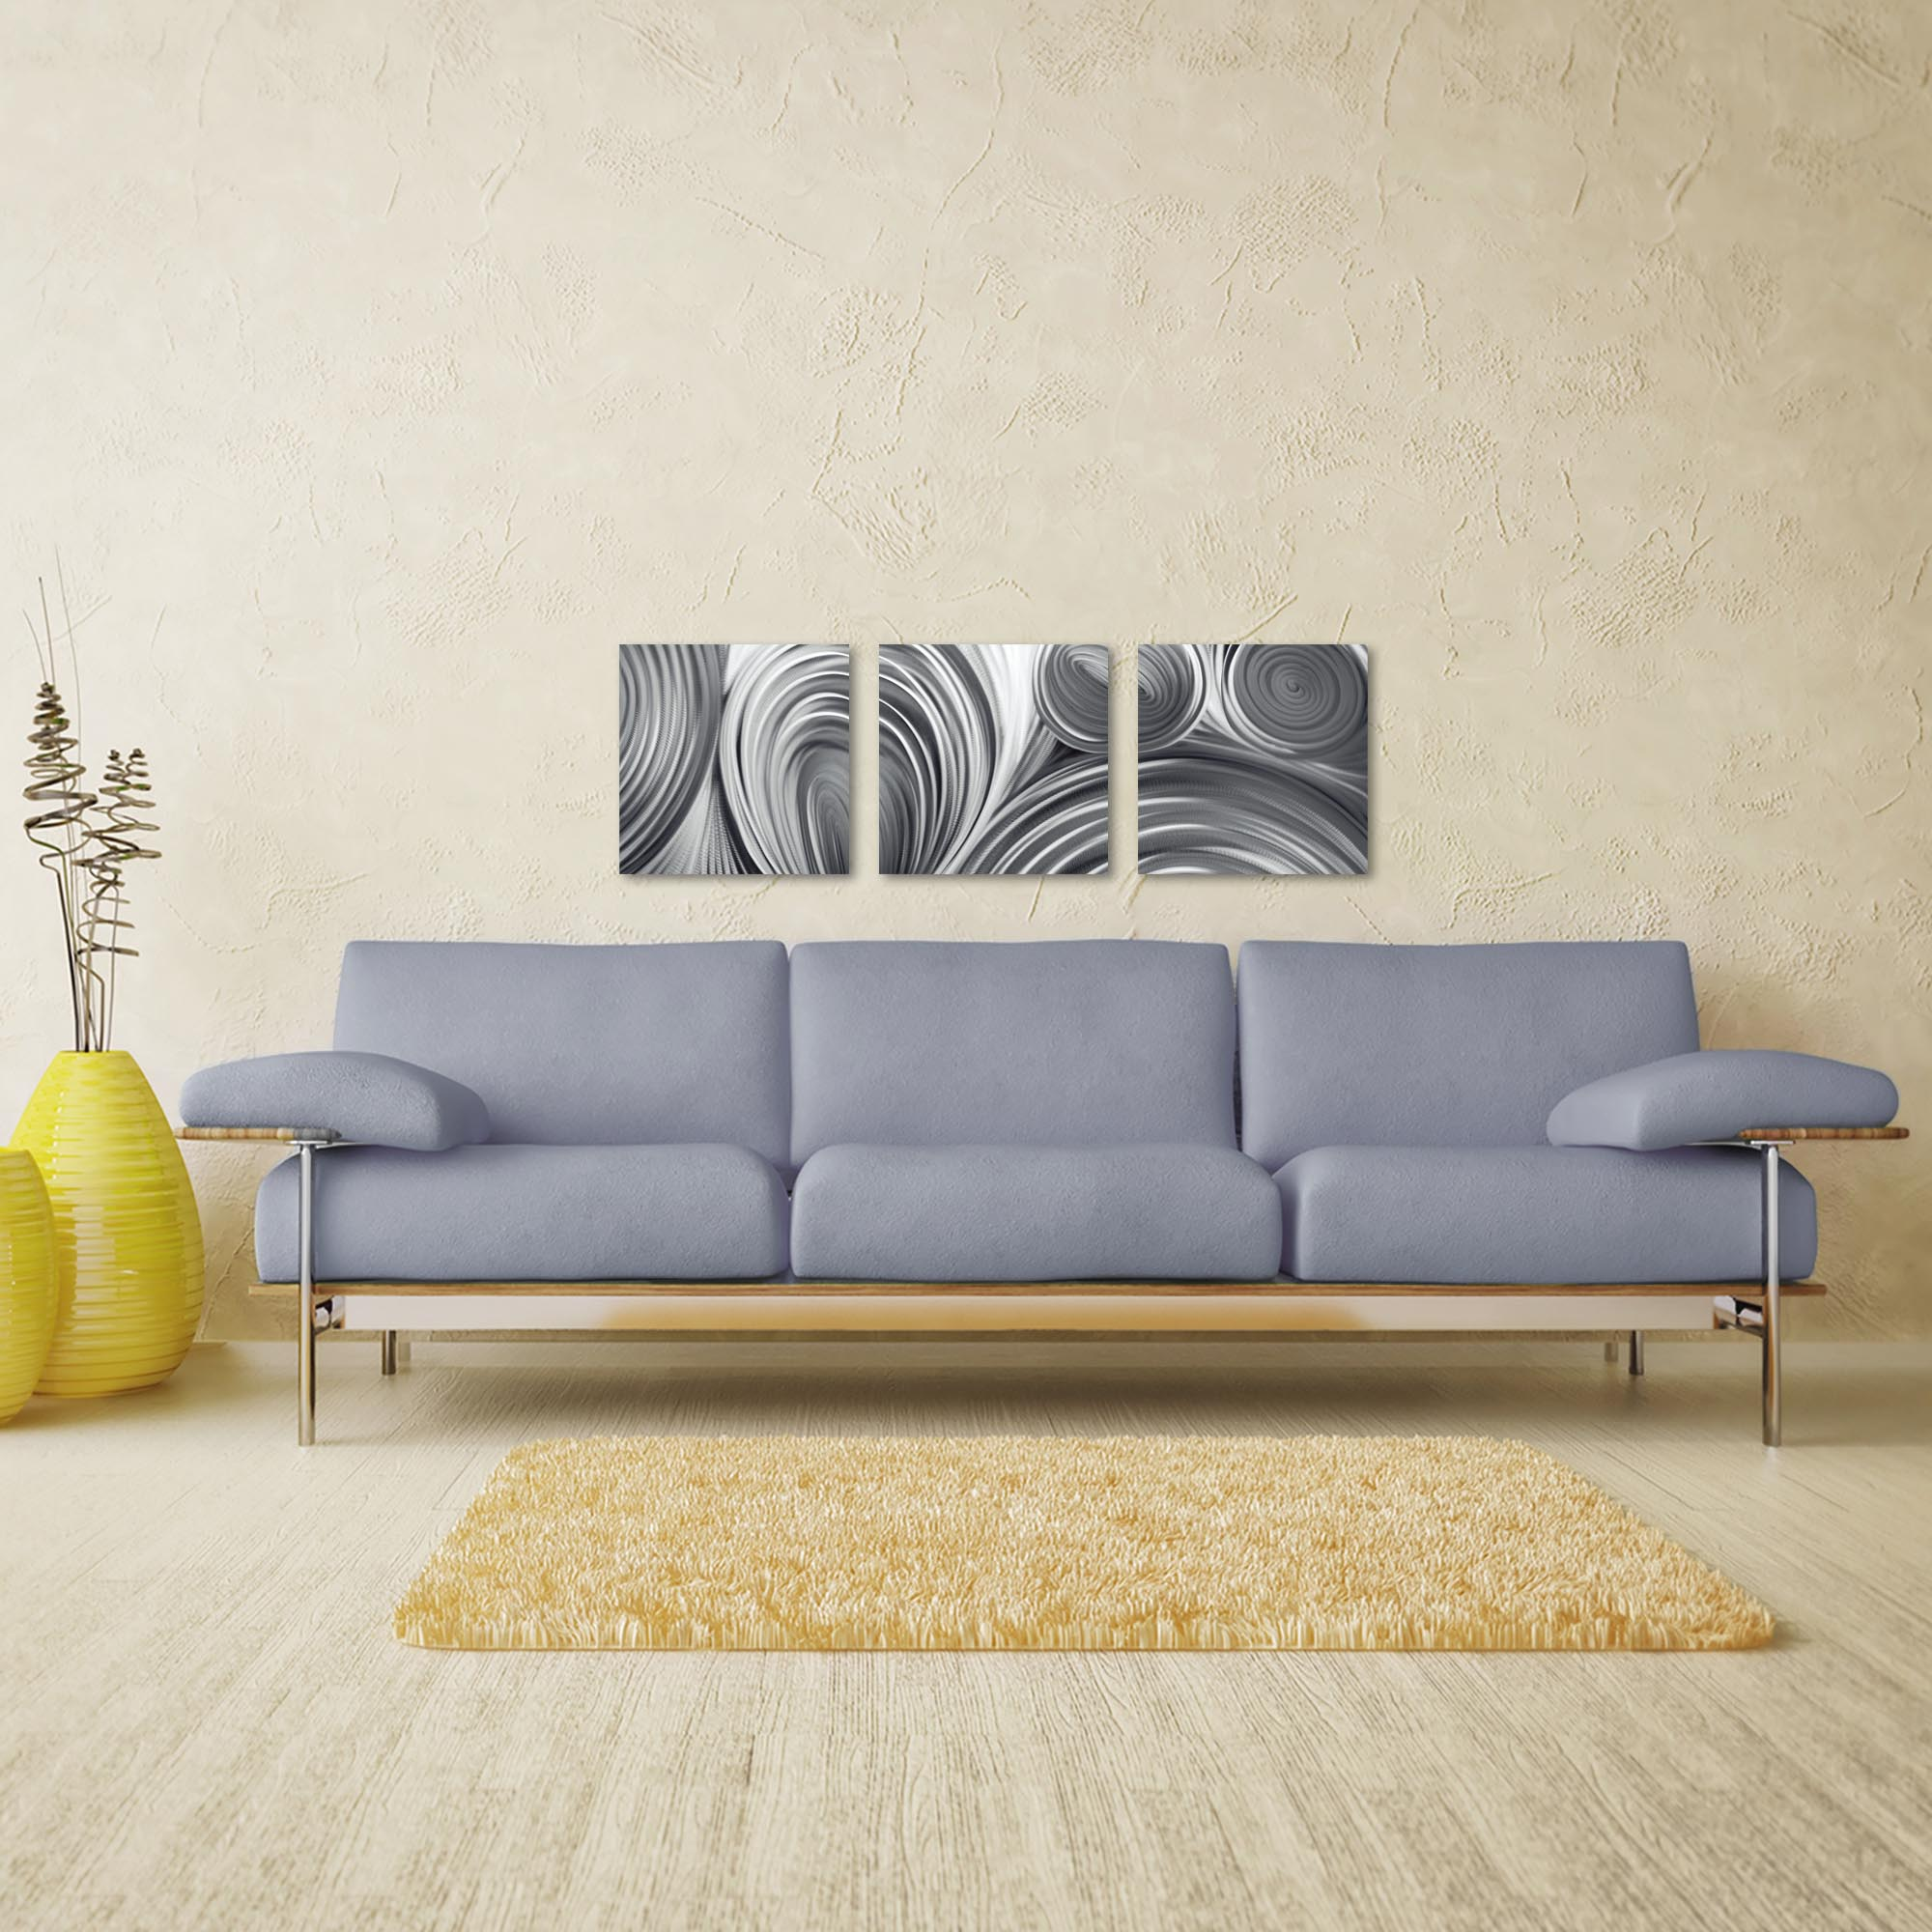 Conduction Triptych 38x12in. Metal or Acrylic Contemporary Decor - Lifestyle View